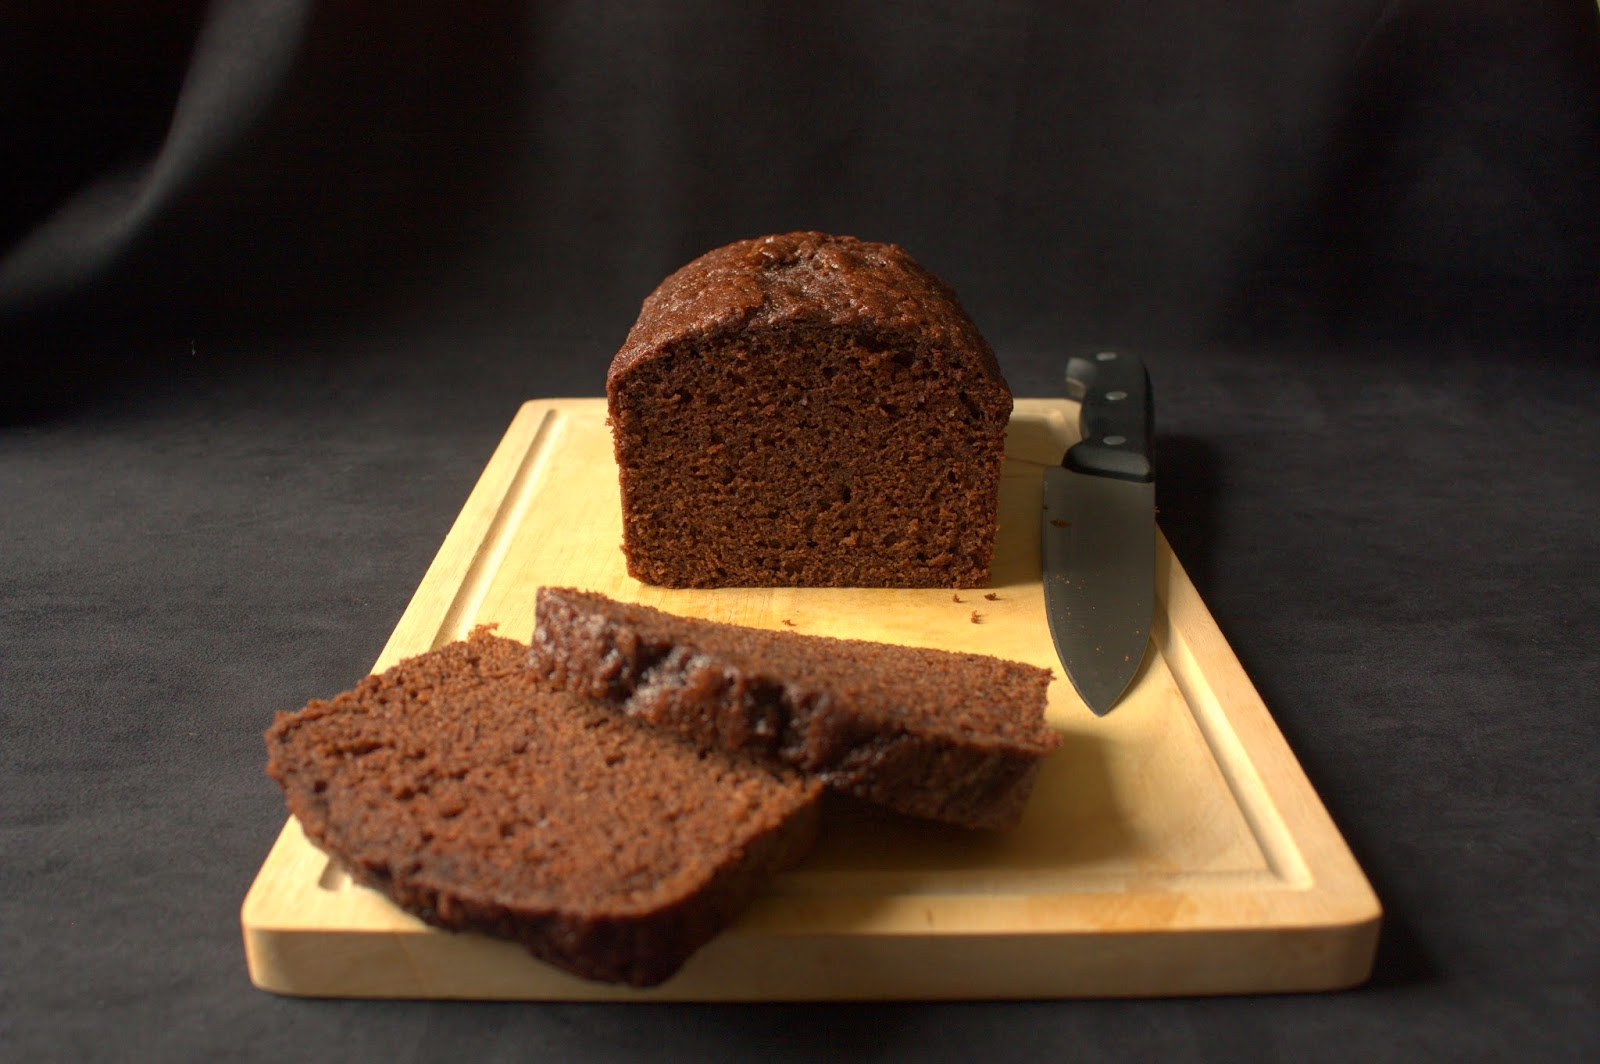 I'd Much Rather Bake Than...: Chocolate Chilli Loaf Cake